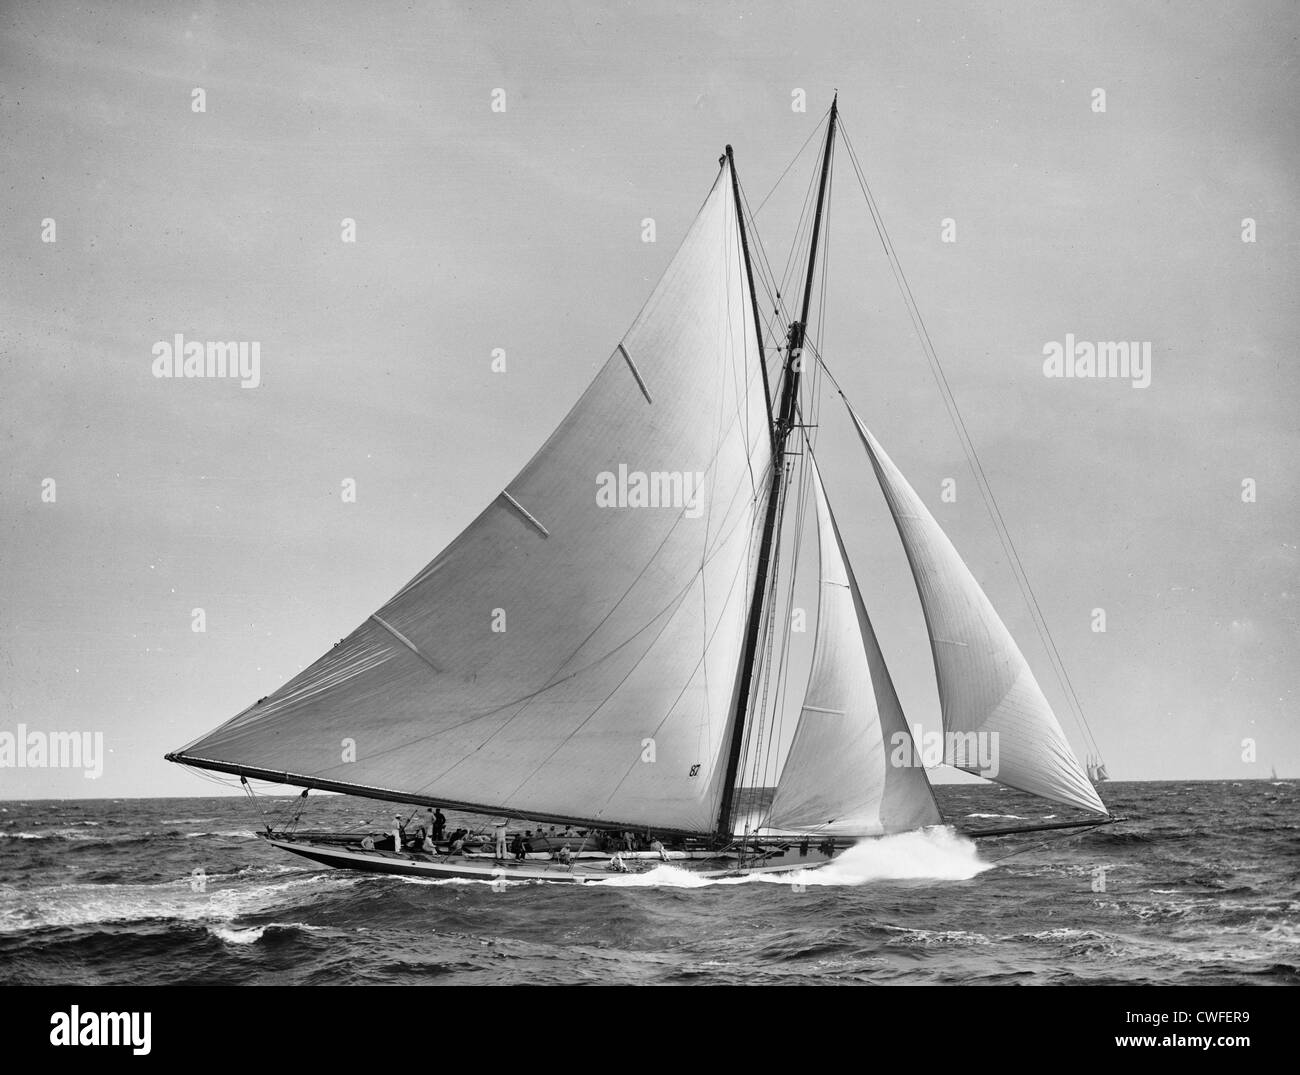 Yacht  Jubilee, September 11, 1893, contender to defend the America's Cup 1893, - Stock Image